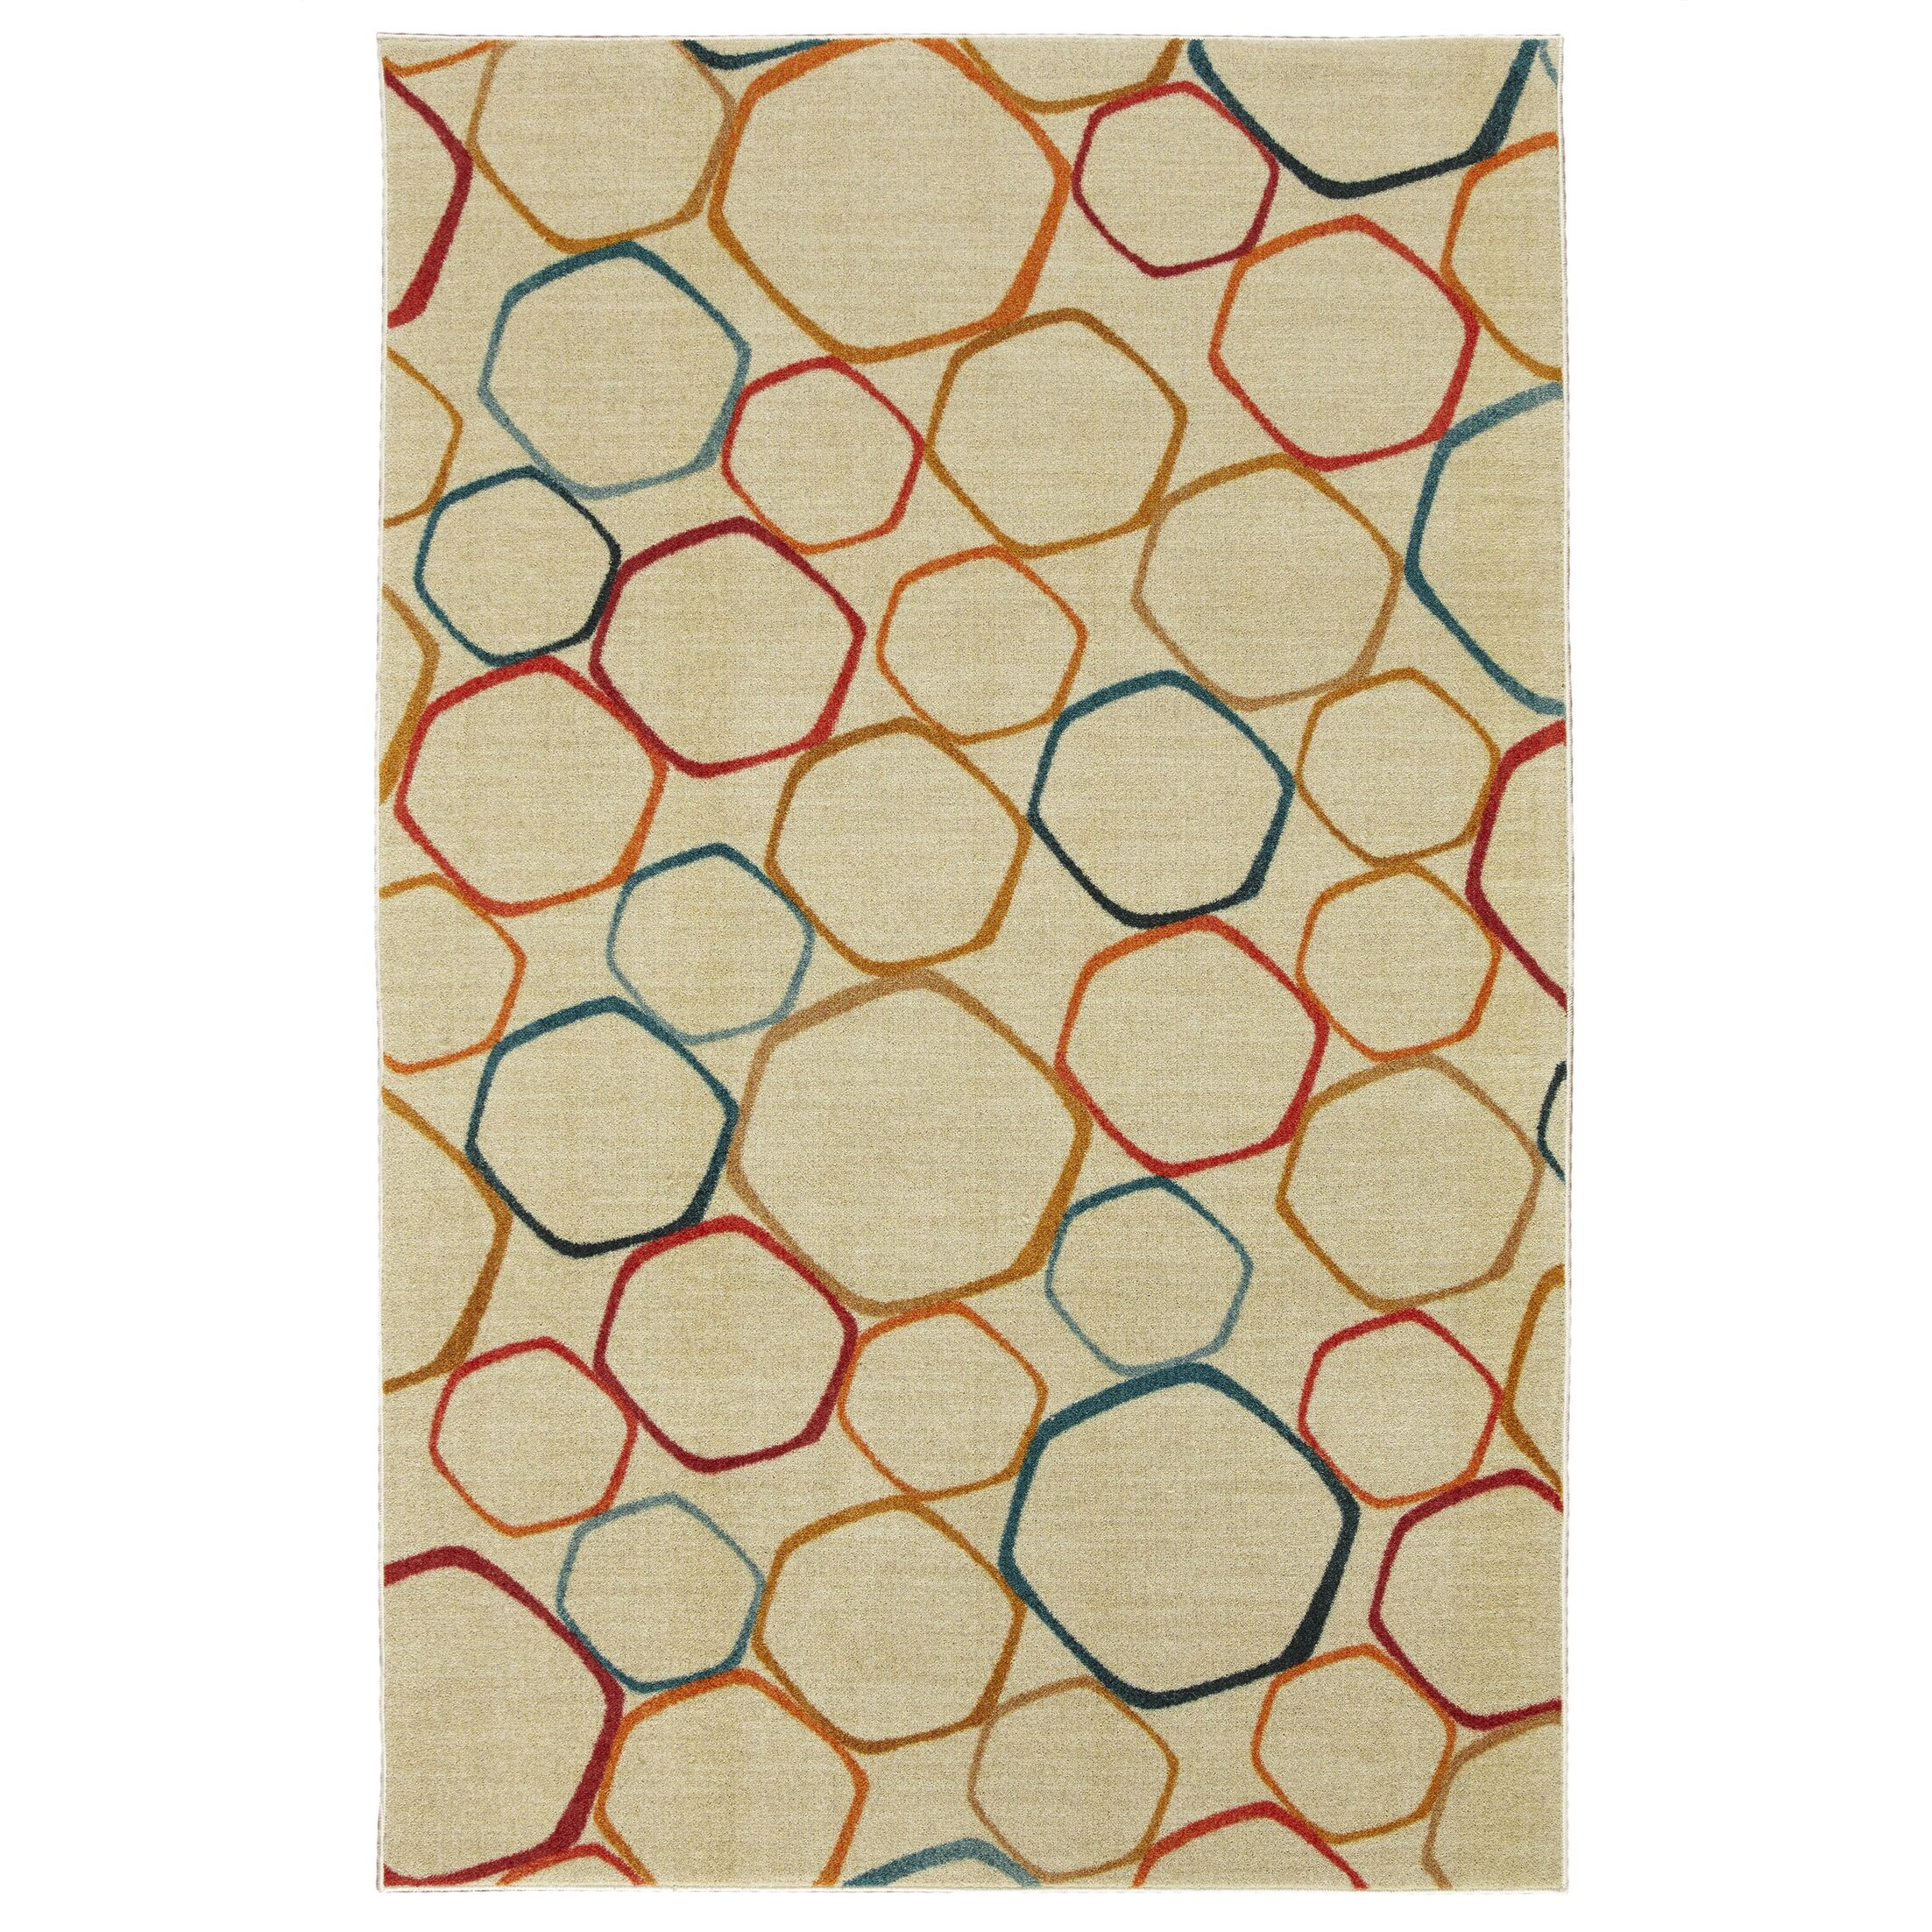 Locher Graphic Circles Cream/Yellow Area Rug Rug Size: Rectangle 8' x 10'